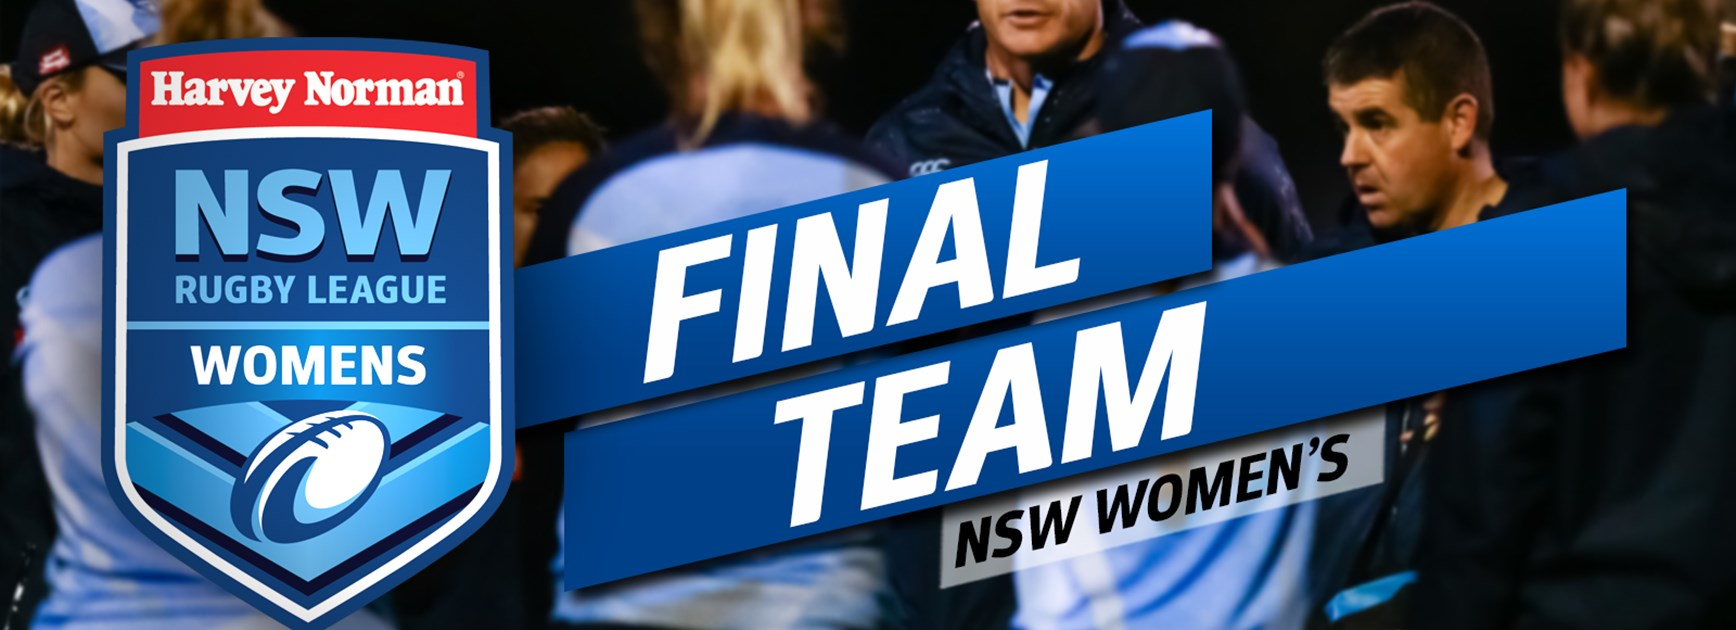 FINAL TEAM | Harvey Norman NSW Women's